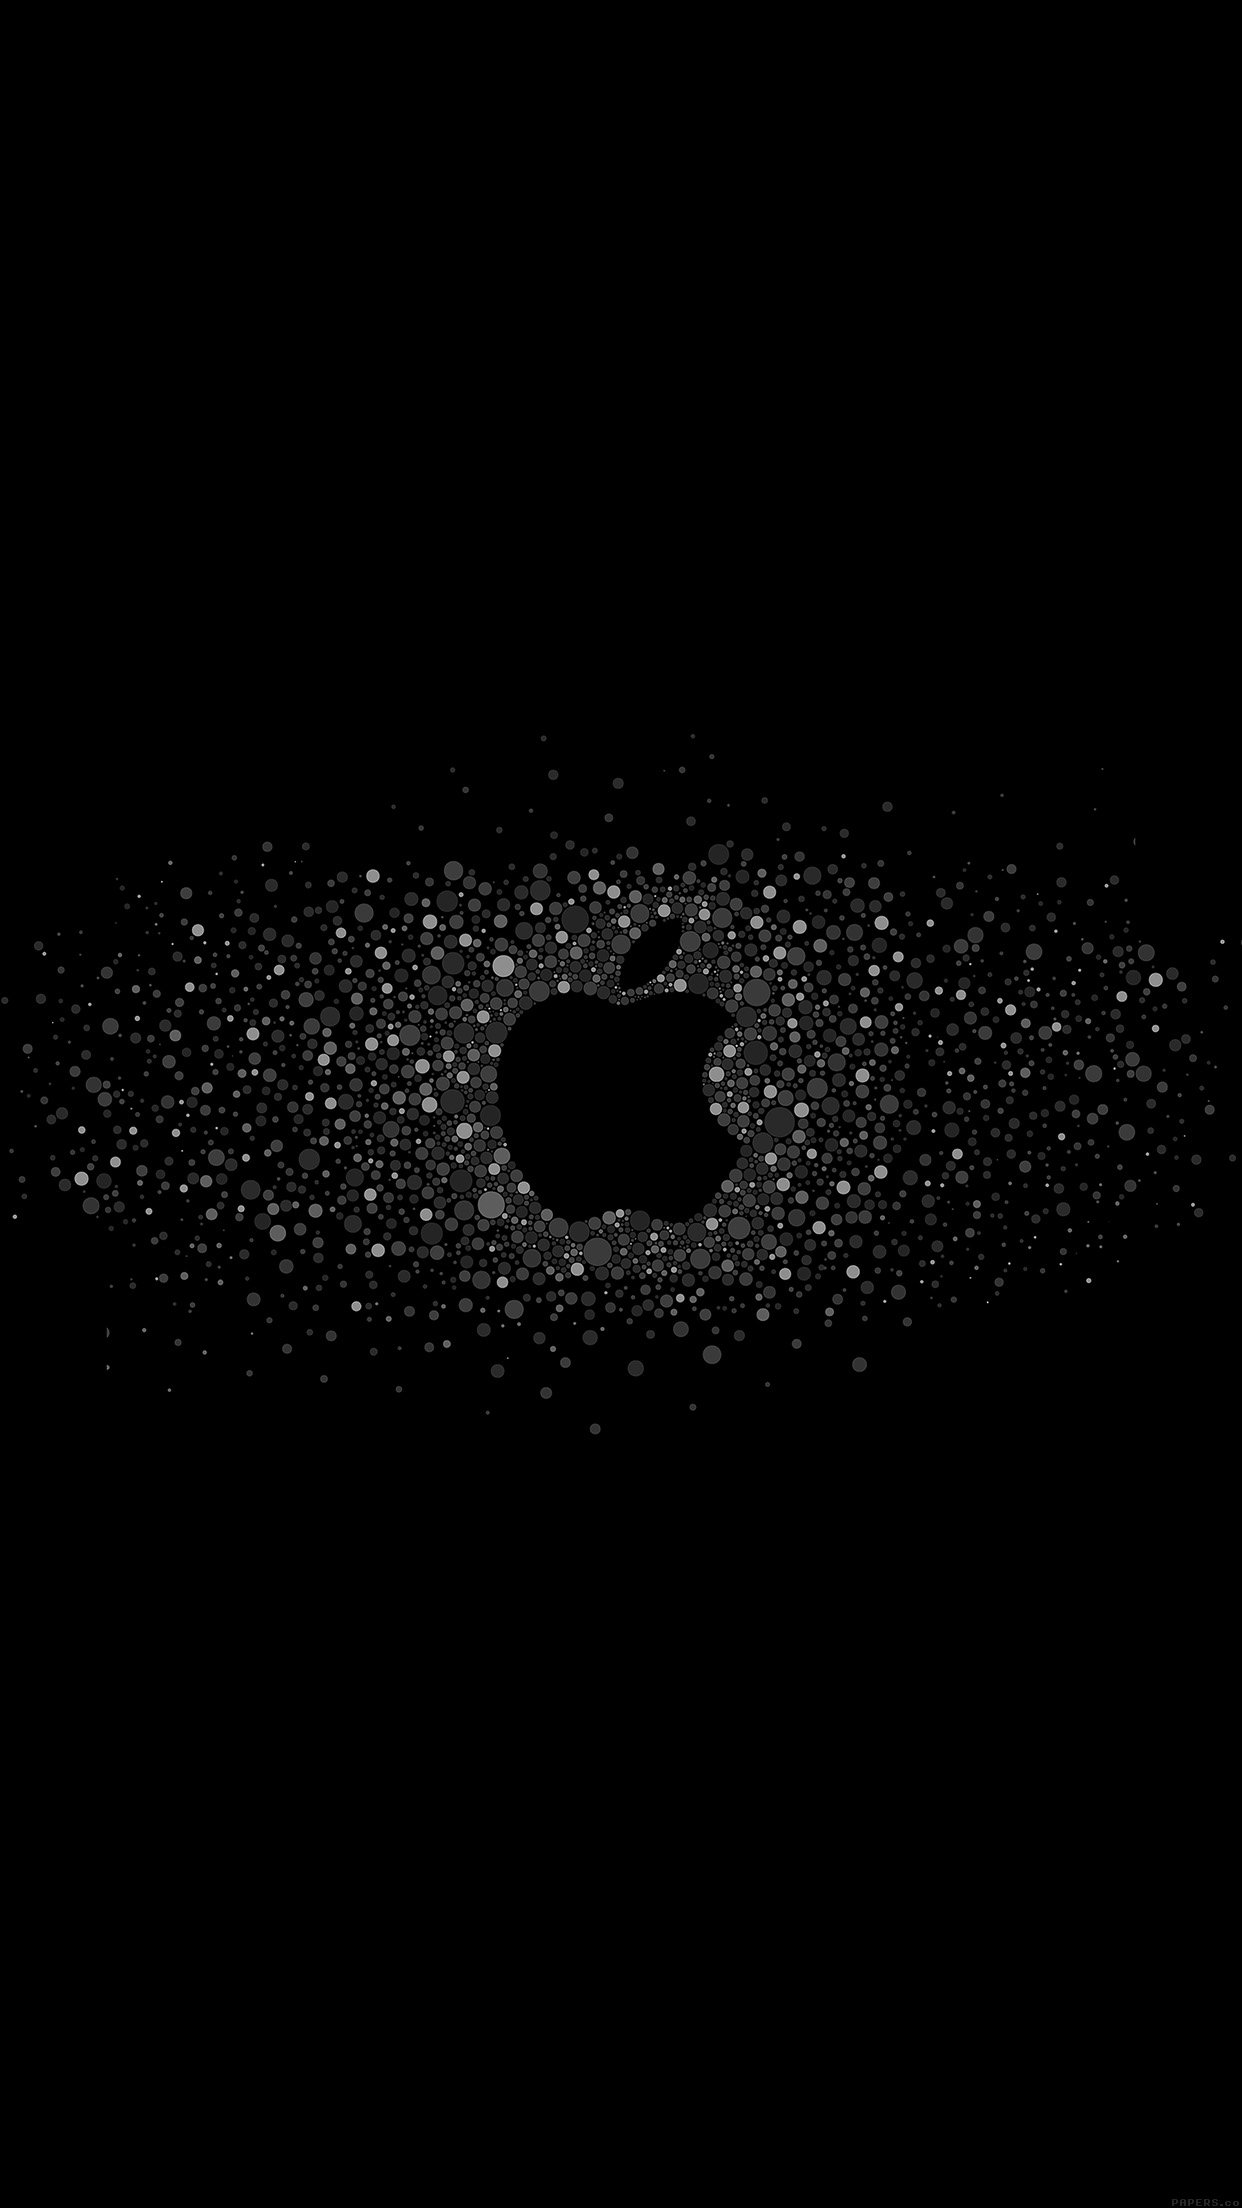 Wwdc 2017 wallpapers and logo pack for Immagini apple hd